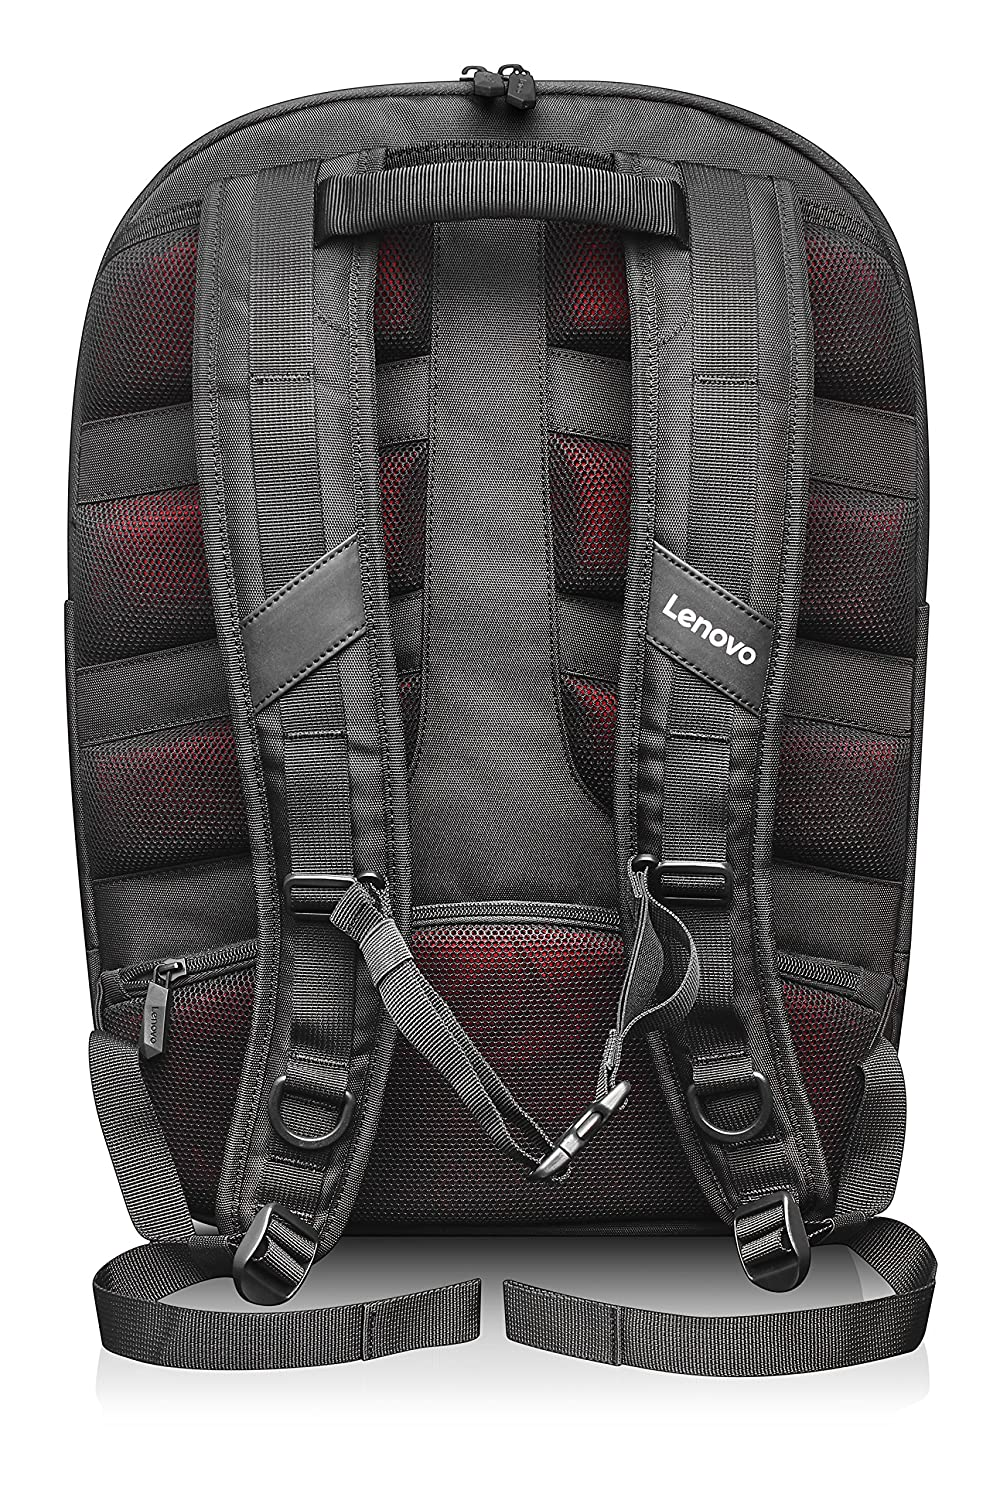 Lenovo GX40L16533 Armored Gaming Backpack (Black) - Buy Lenovo GX40L16533  Armored Gaming Backpack (Black) Online at Low Price in India - Amazon.in 7d998286cd432